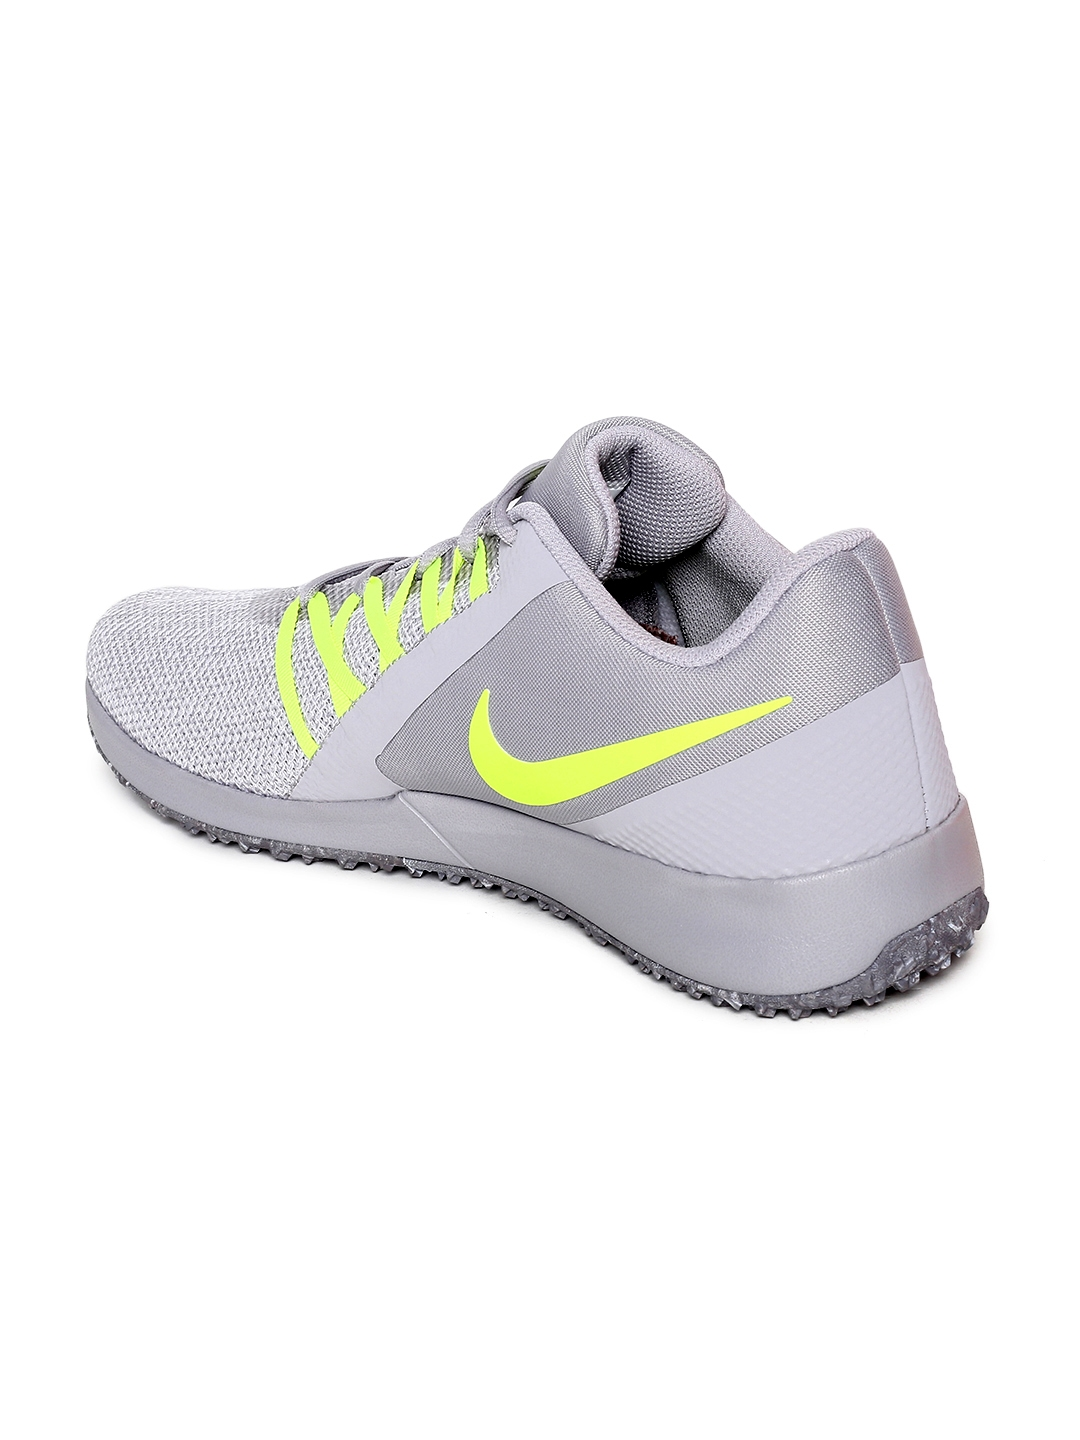 29c616a29c6 Buy Nike Men Grey VARSITY COMPETE Training Shoes - Sports Shoes for ...